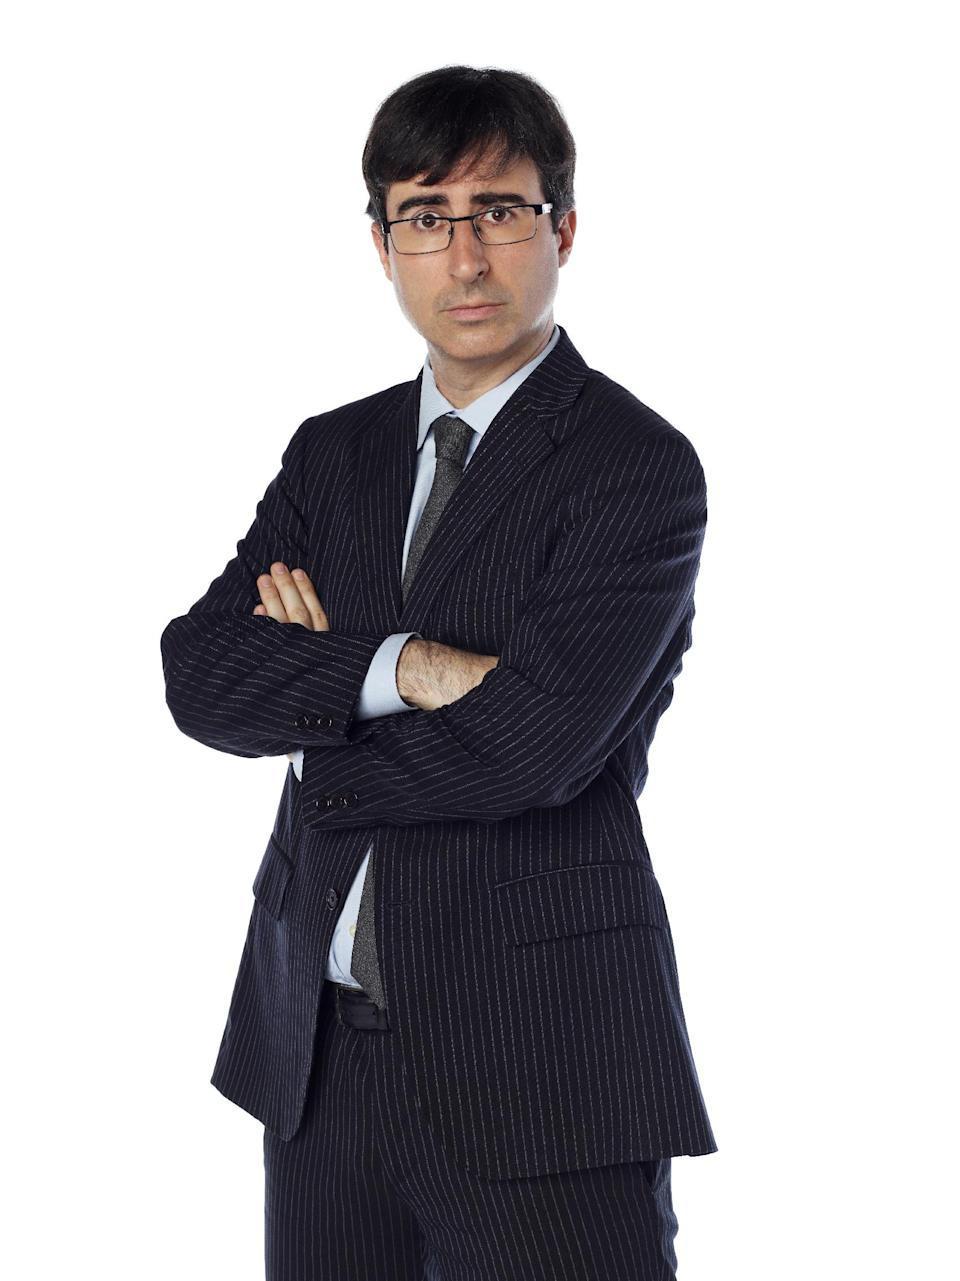 "This undated image released by Comedy Central shows John Oliver, a correspondent from ""The Daily Show with Jon Stewart."" Oliver will temporarily replace host Jon Stewart on the popular spoof news show while Stewart directs and produces the film, ""Rosewater."" (AP Photo/Comedy Central, Martin Crook)"